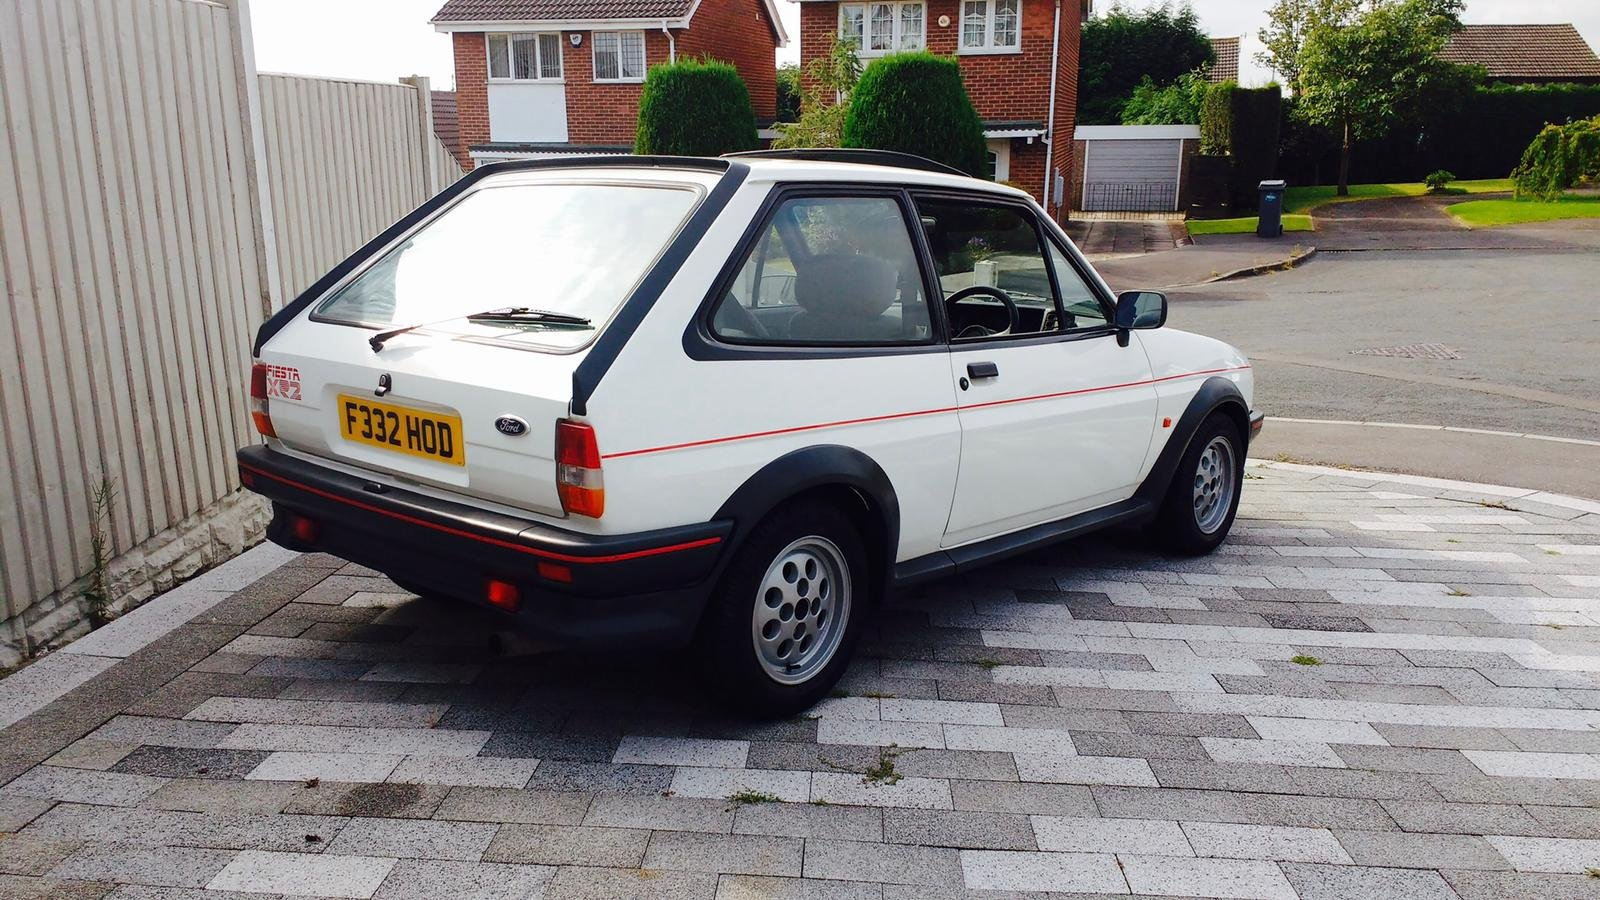 1988 FORD FIESTA XR2 MK2  For Sale (picture 2 of 6)